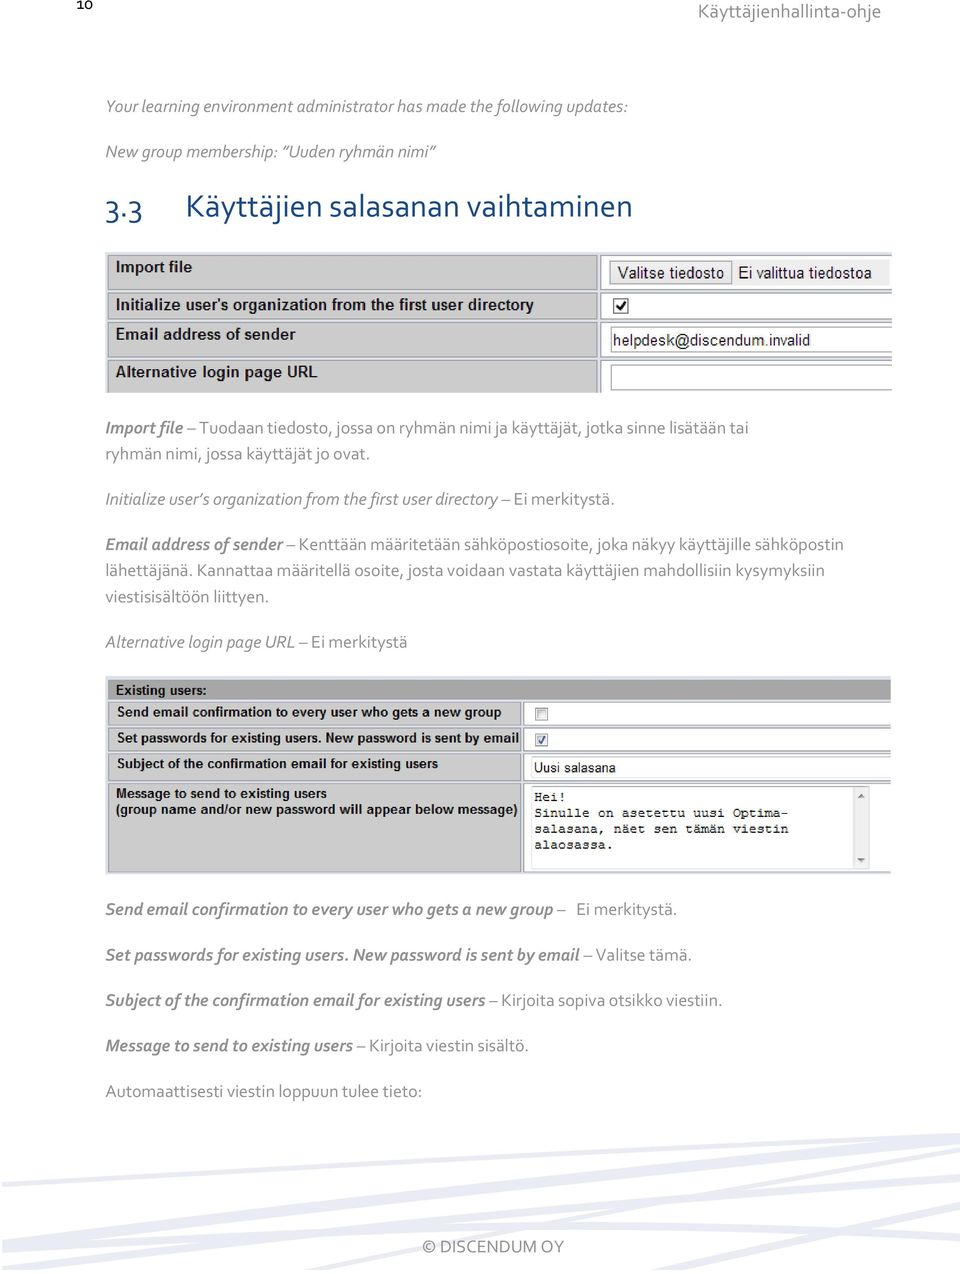 Initialize user s organization from the first user directory Ei merkitystä. Email address of sender Kenttään määritetään sähköpostiosoite, joka näkyy käyttäjille sähköpostin lähettäjänä.